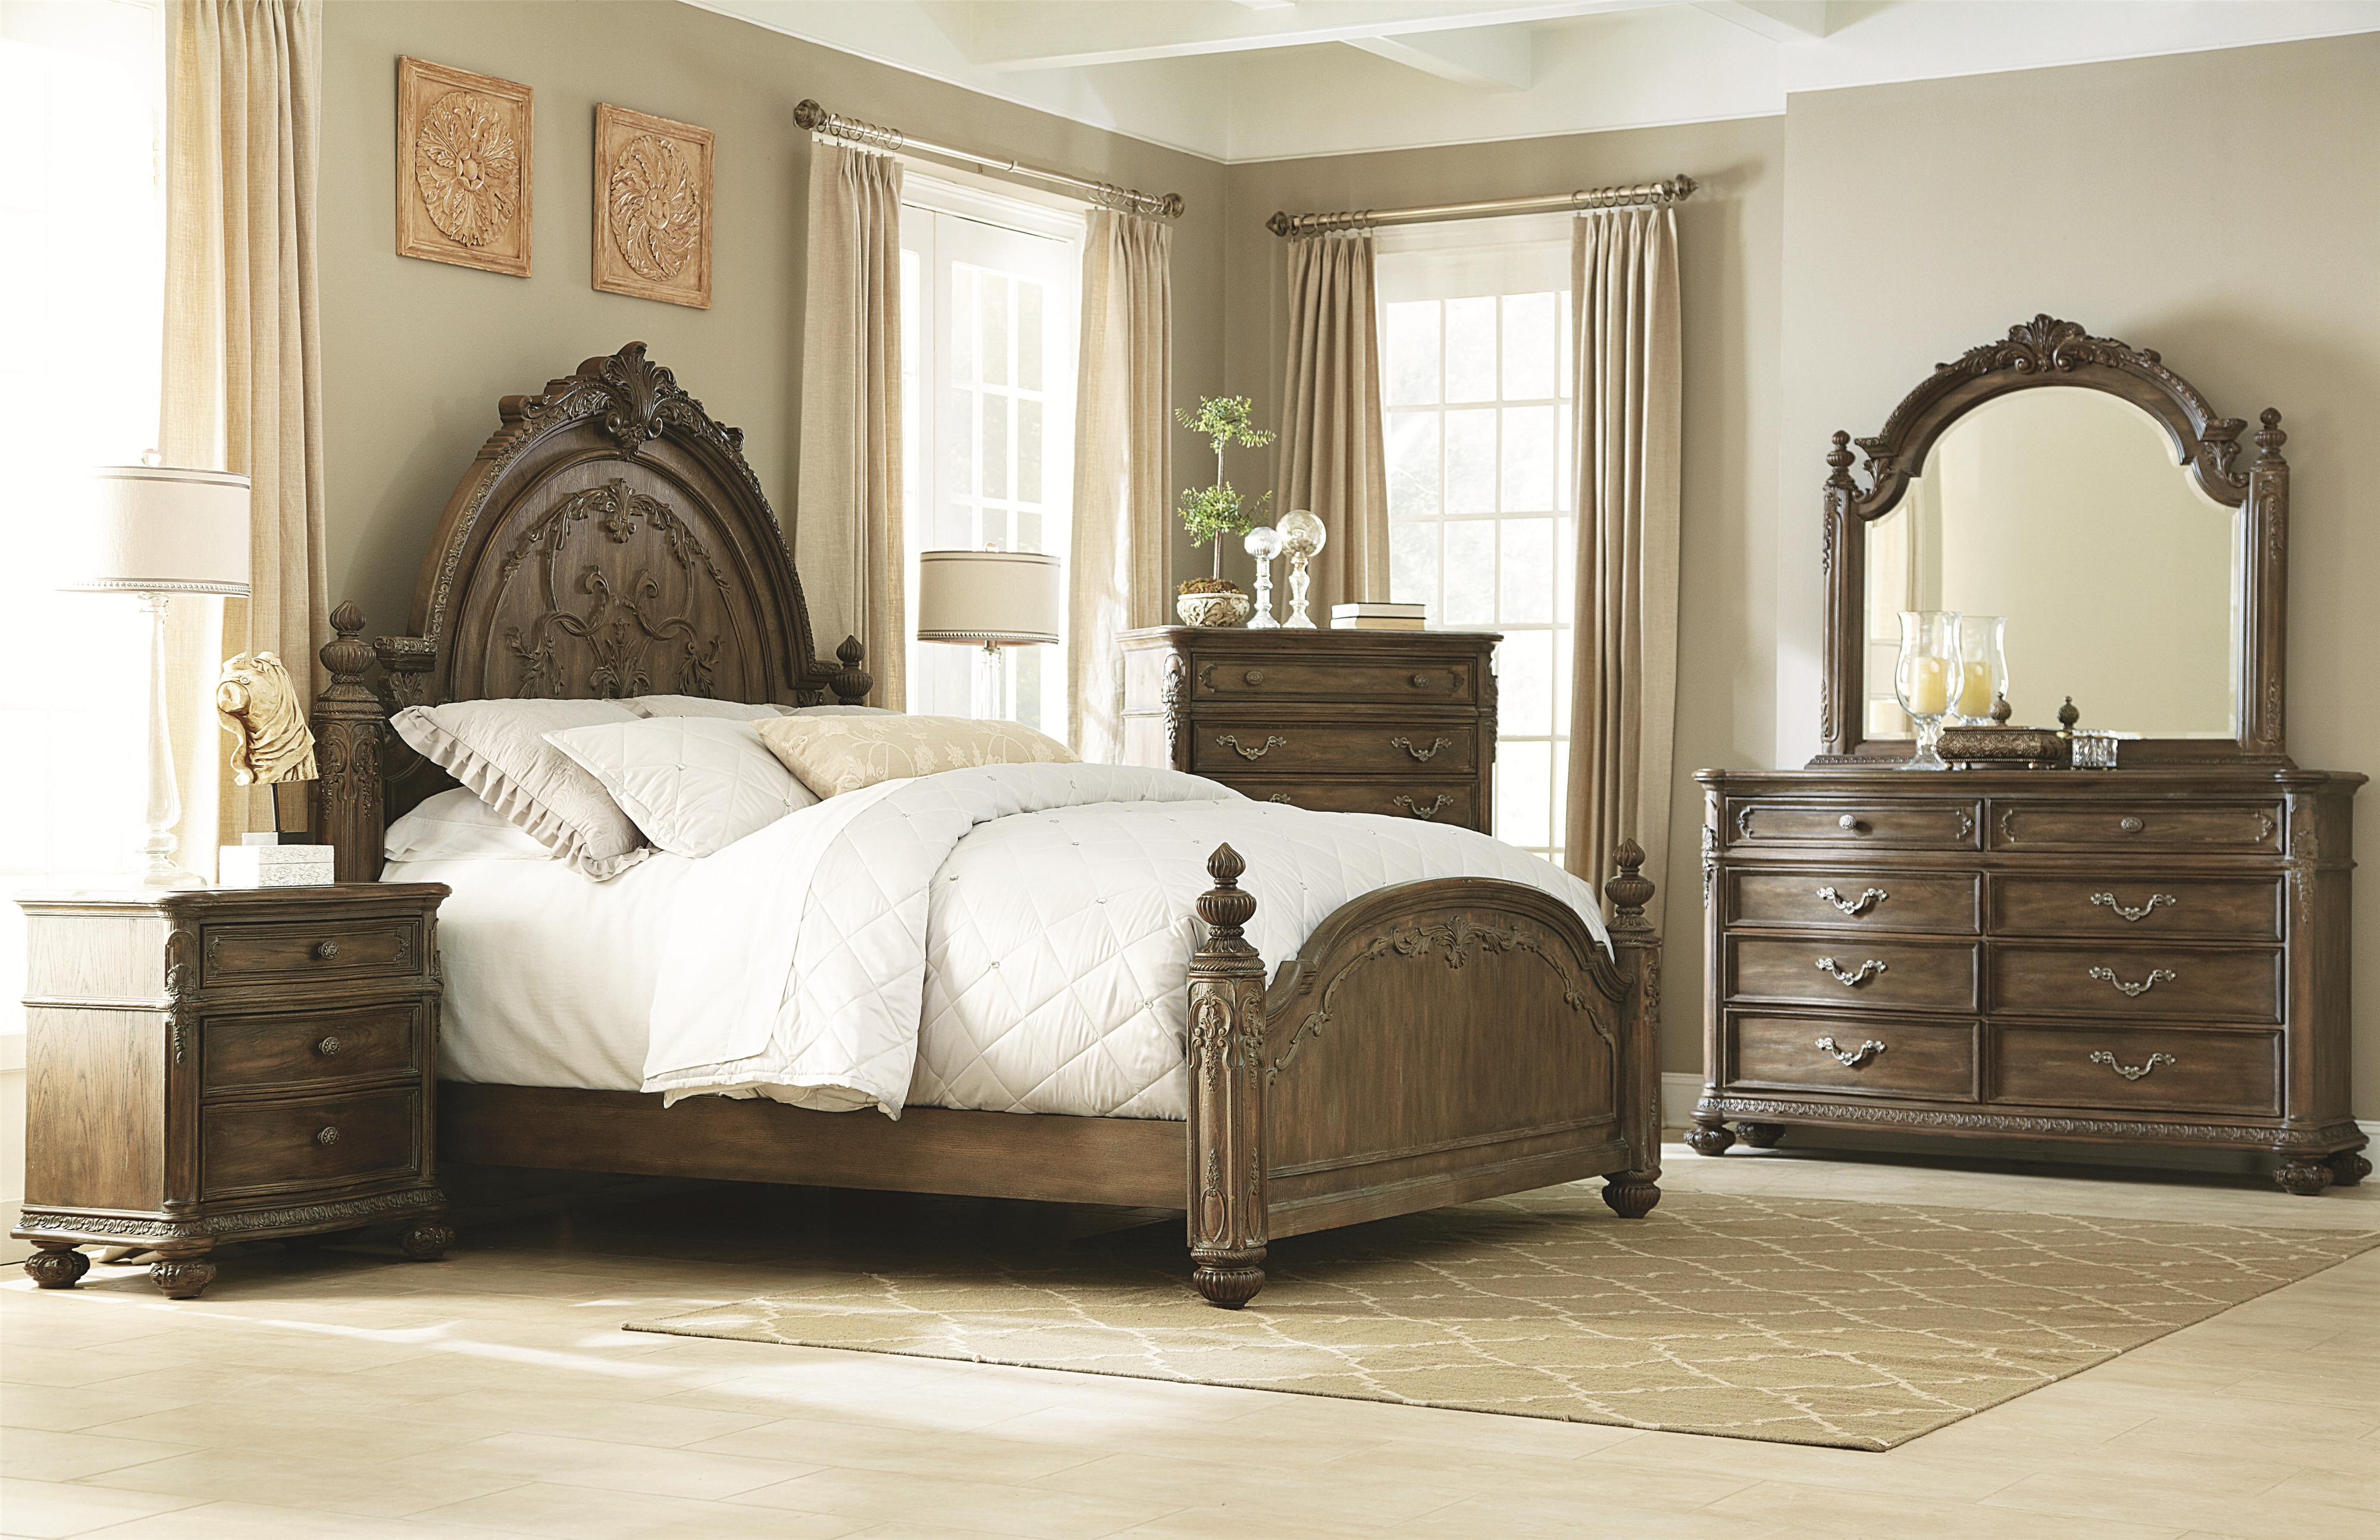 3 Drawer Nightstand With Acanthus Leaf Detailing By American Drew Wolf And Gardiner Wolf Furniture